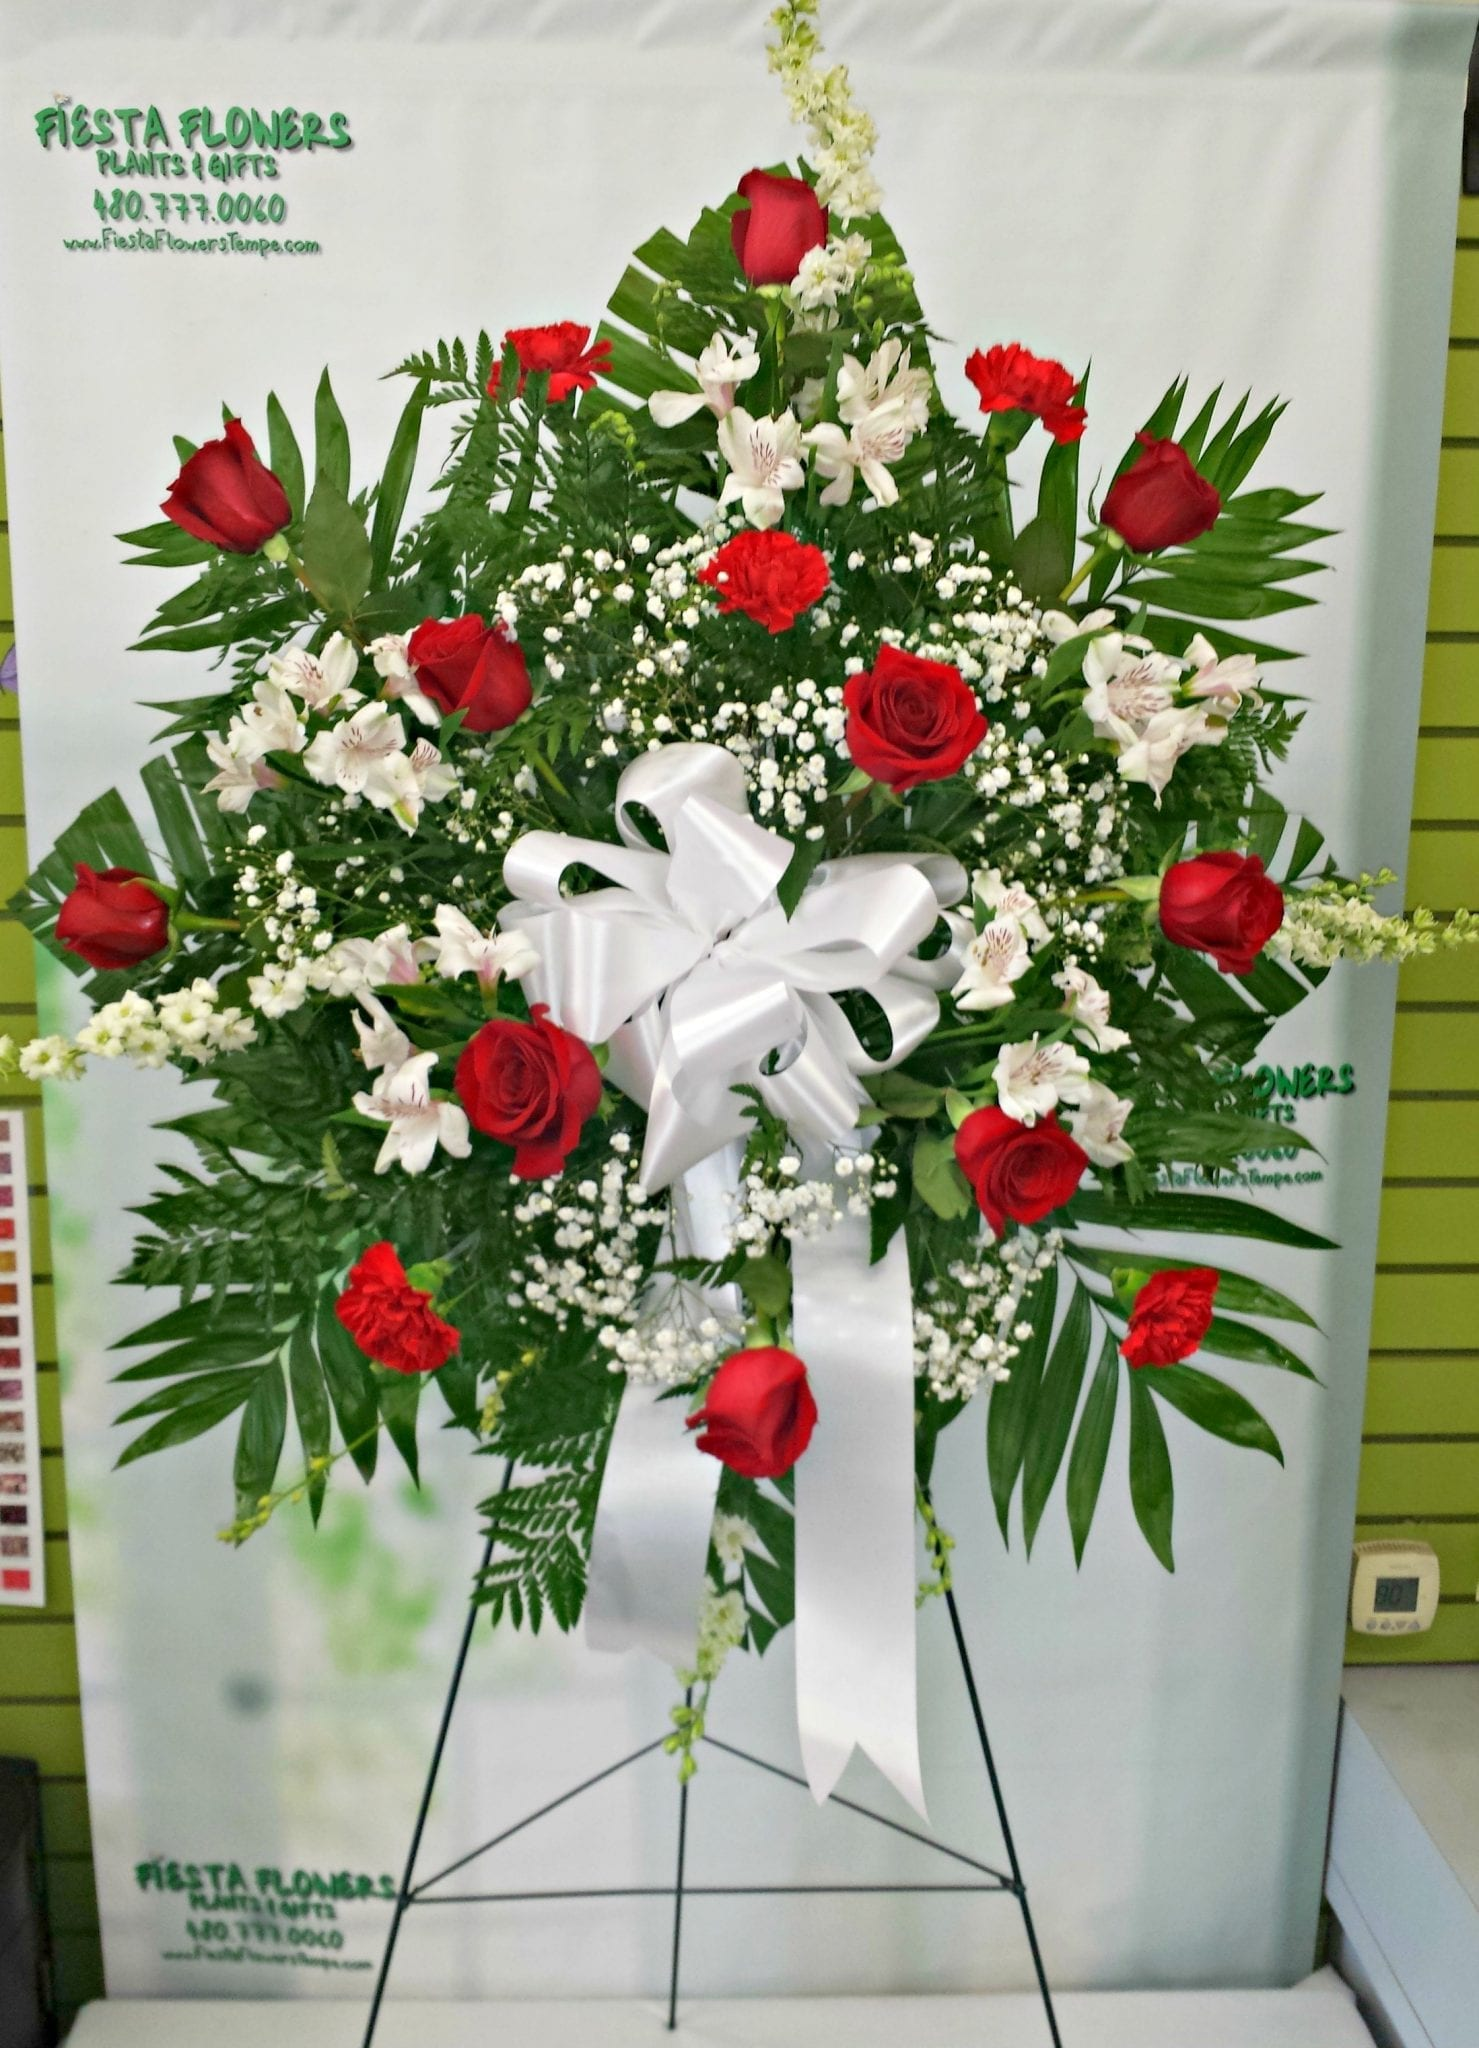 Red And White Sympathy Tribute Fs 405 Fiesta Flowers Plants Gifts